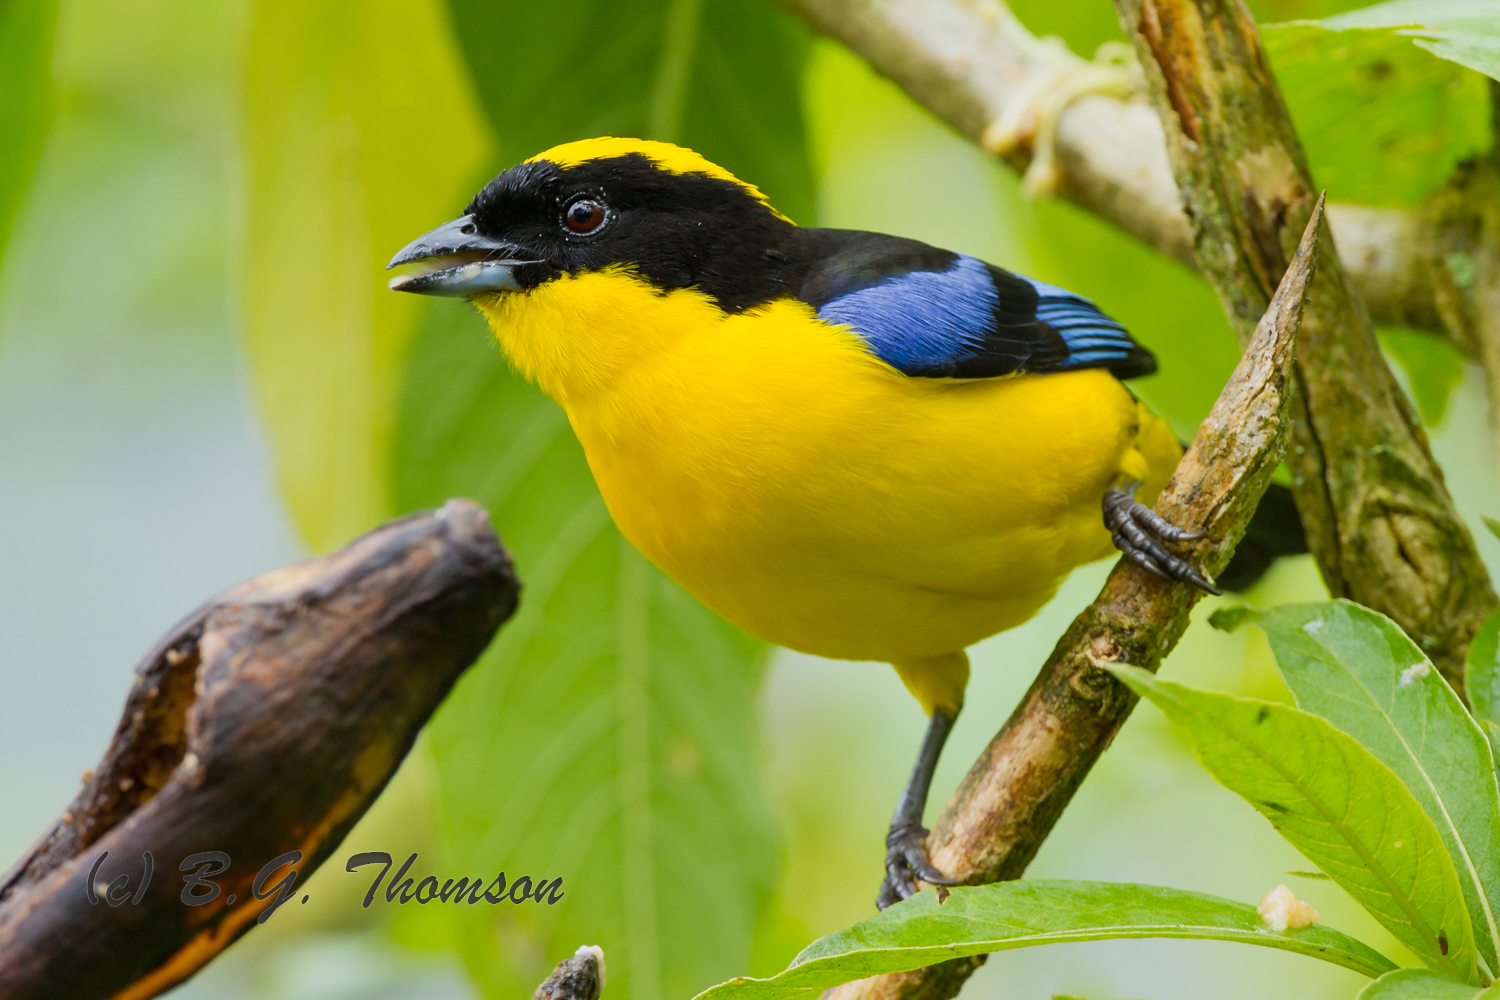 Blue-winged Mountain Tanager, Ecuador birds, wildlife, nature images